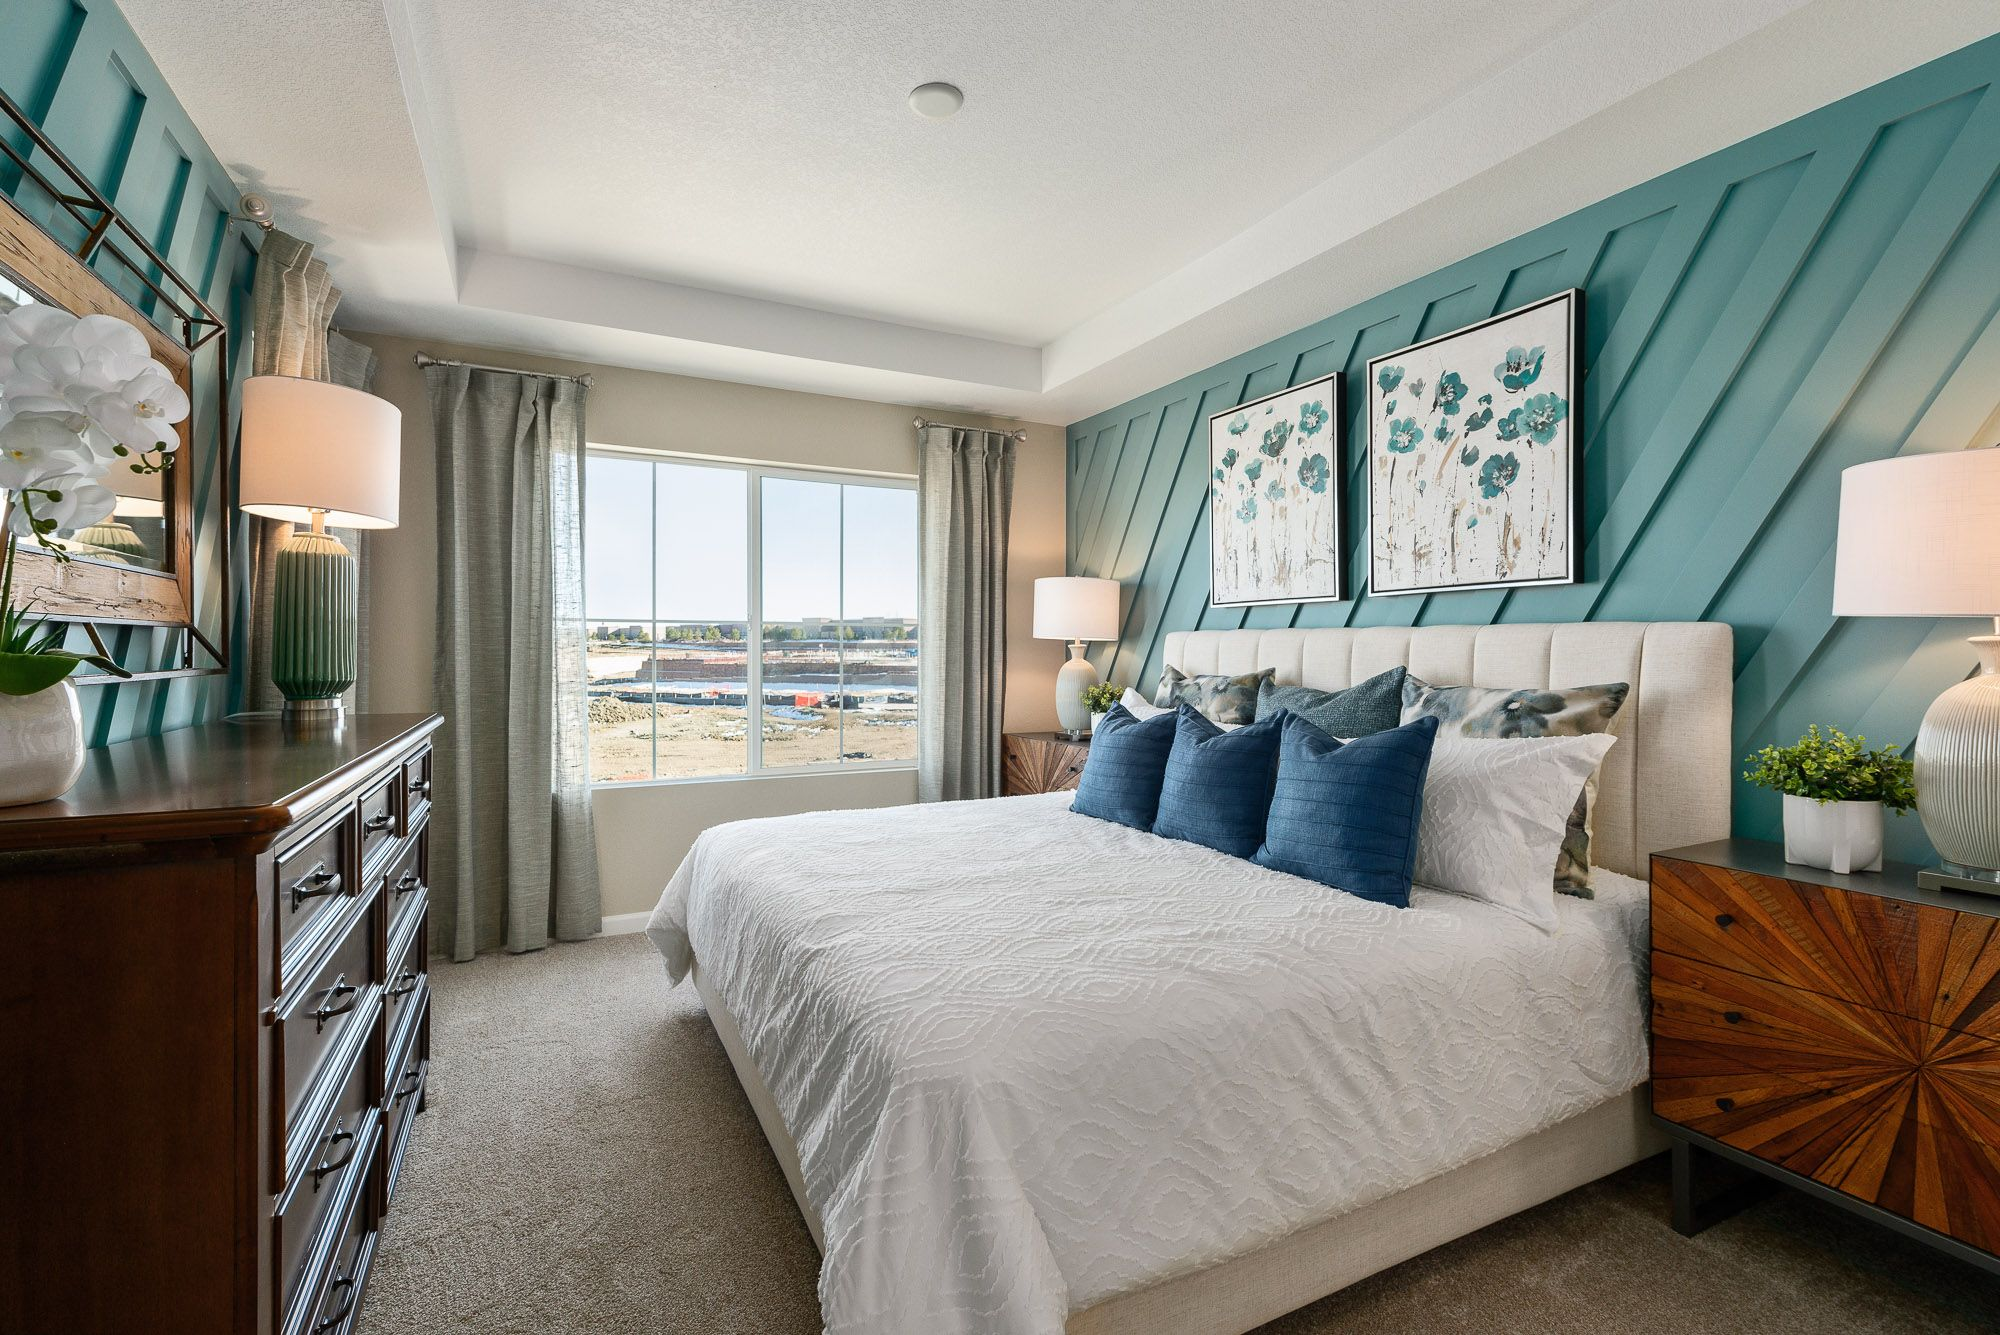 Bedroom featured in the Carlos By Lokal Homes in Denver, CO